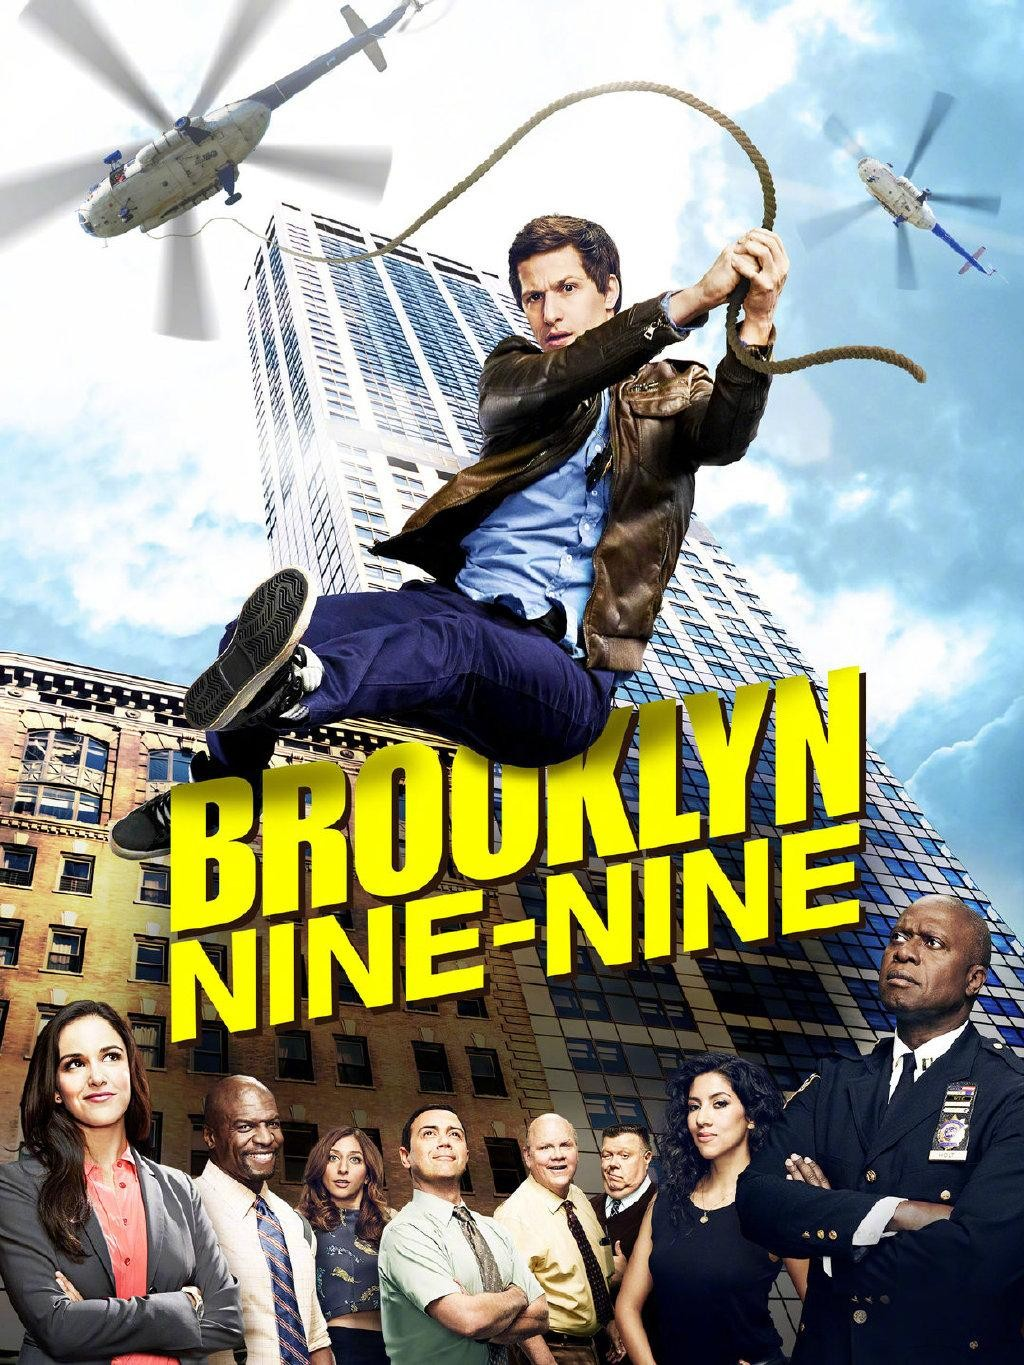 Brooklyn Nine-Nine Season 6 神烦警探 第六季